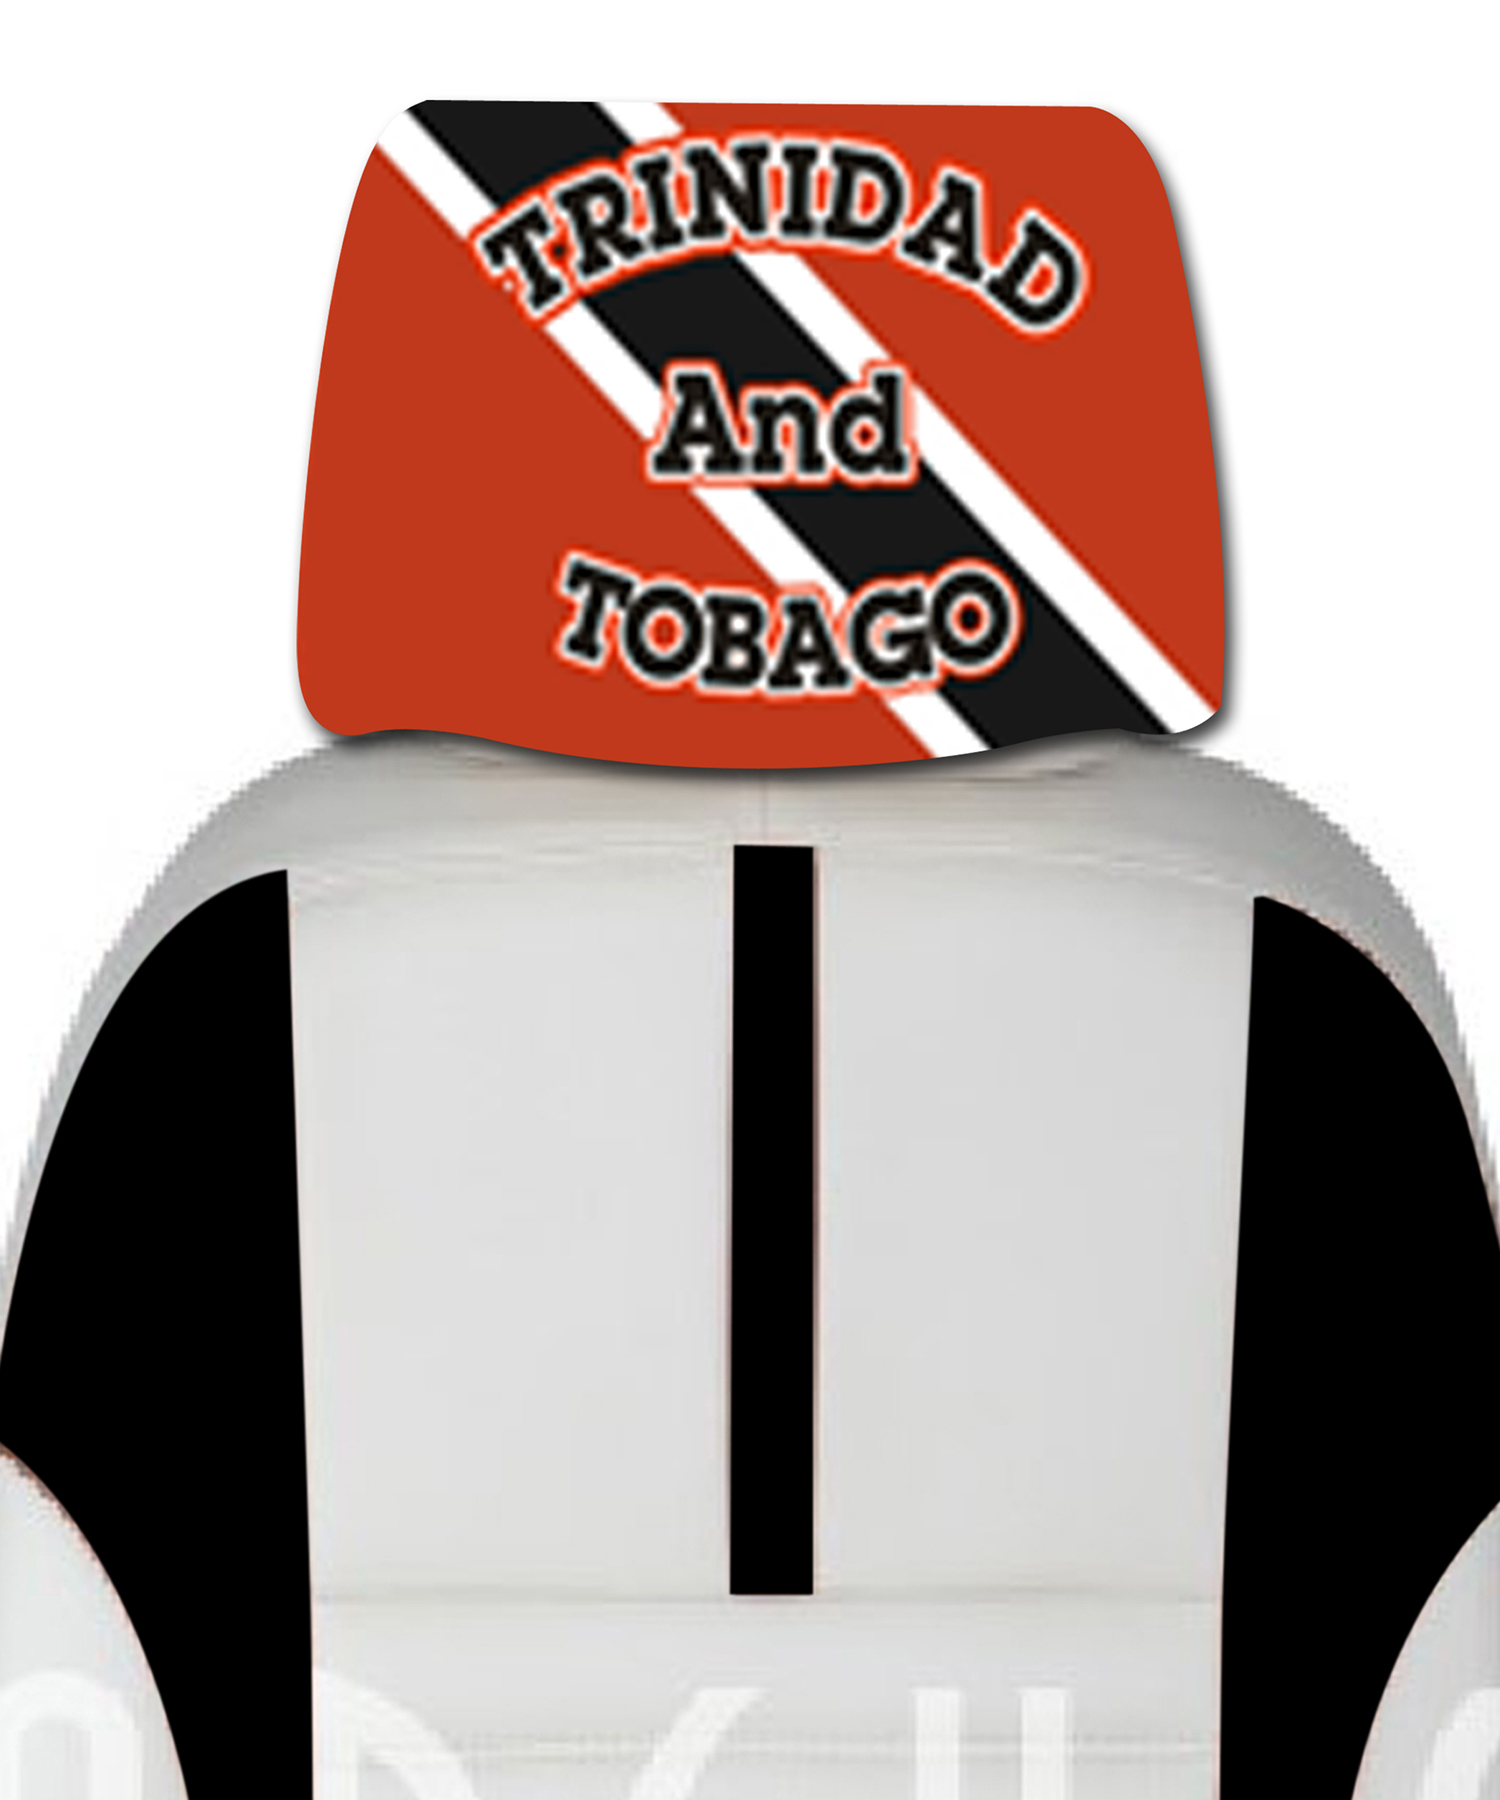 images/Trinidad and Tobago car cover seat flag.jpg